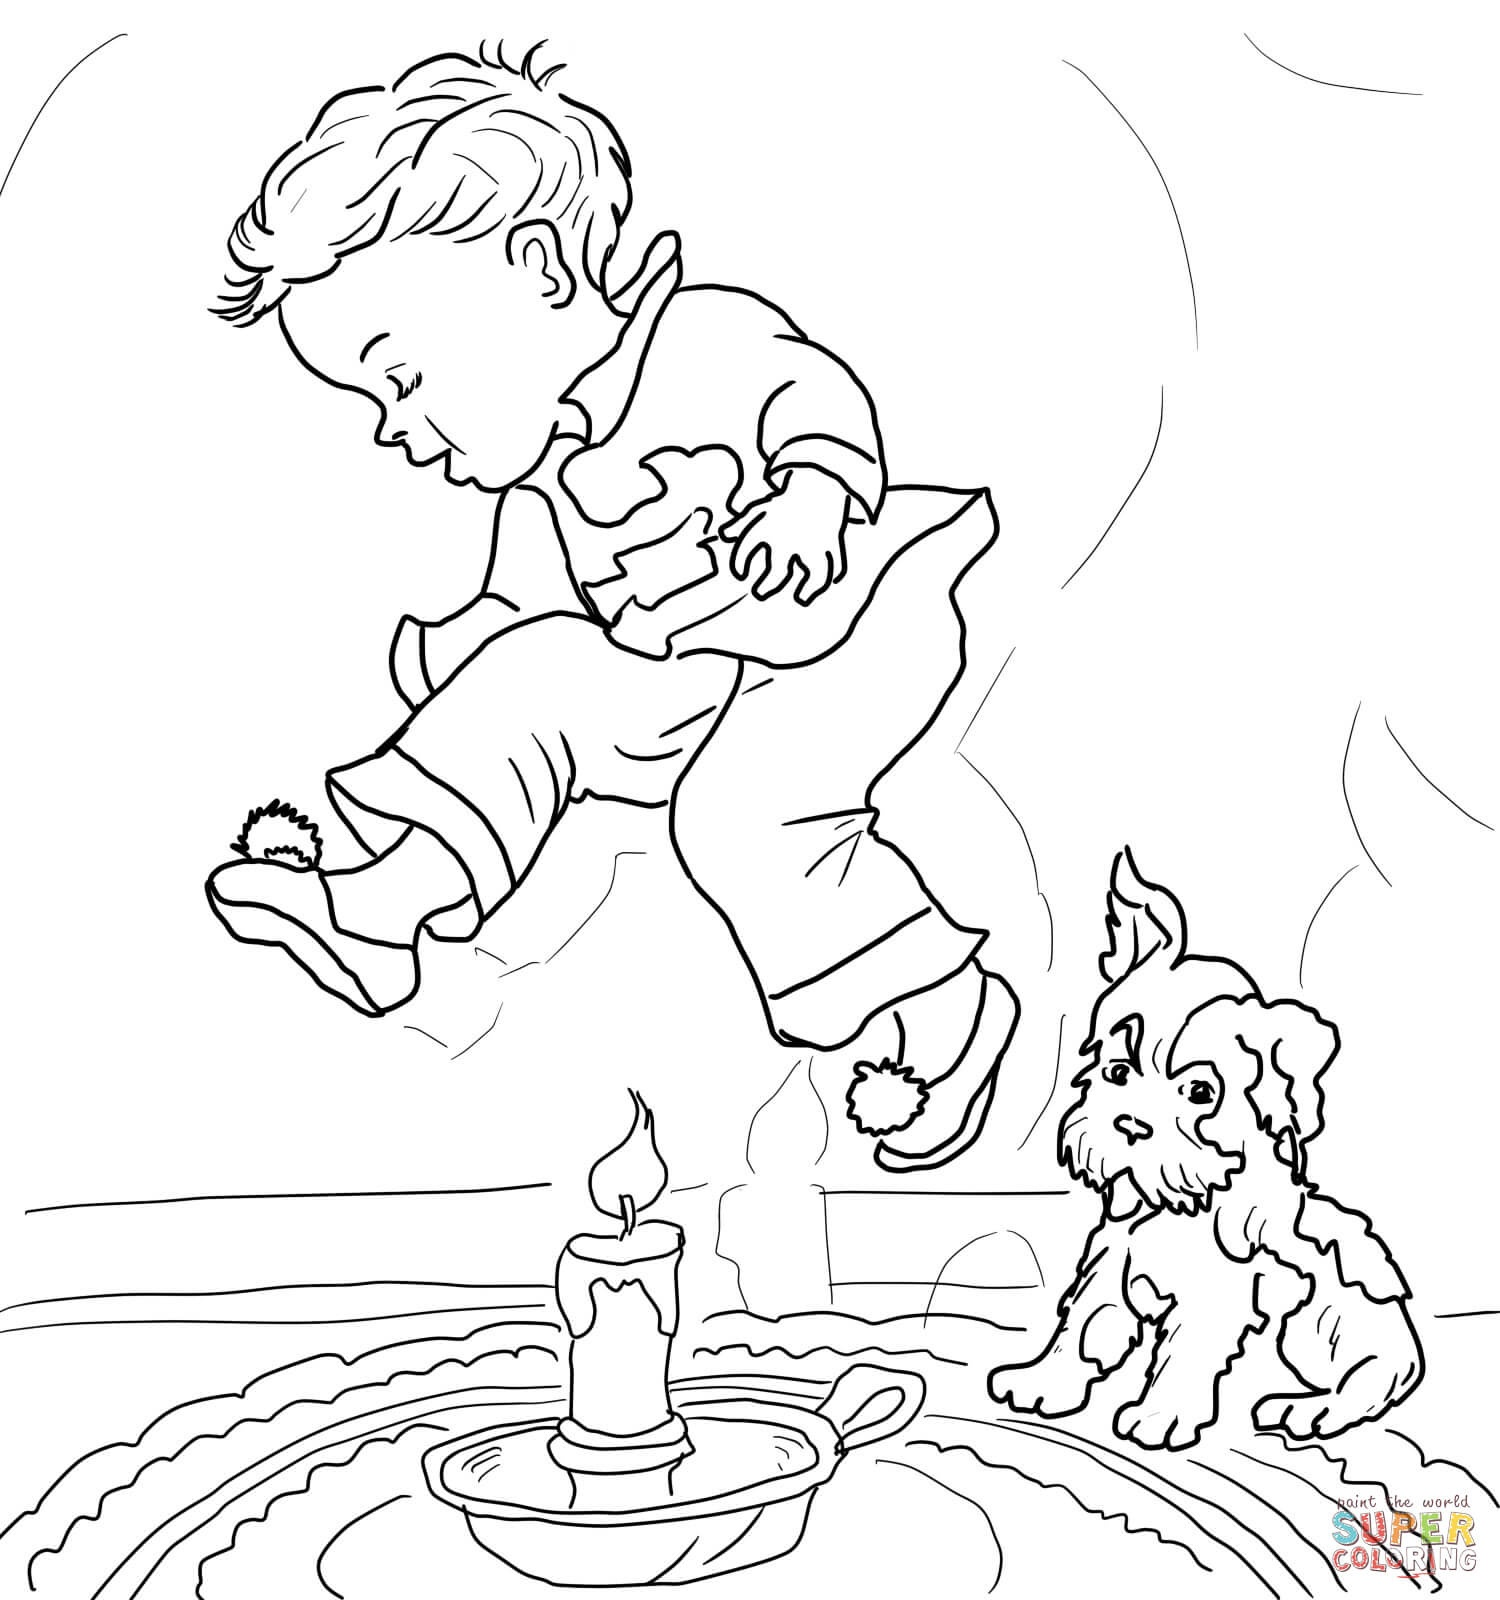 Mother Goose Nursery Rhymes Coloring Pages | Free Coloring Pages - Mother Goose Coloring Pages Free Printable